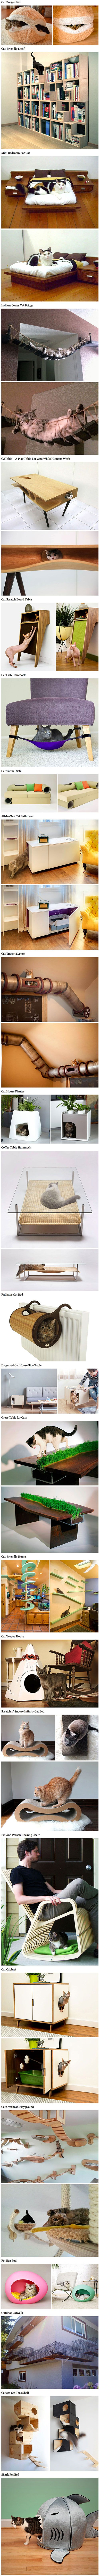 25 awesome furniture design ideas for crazy cat people.